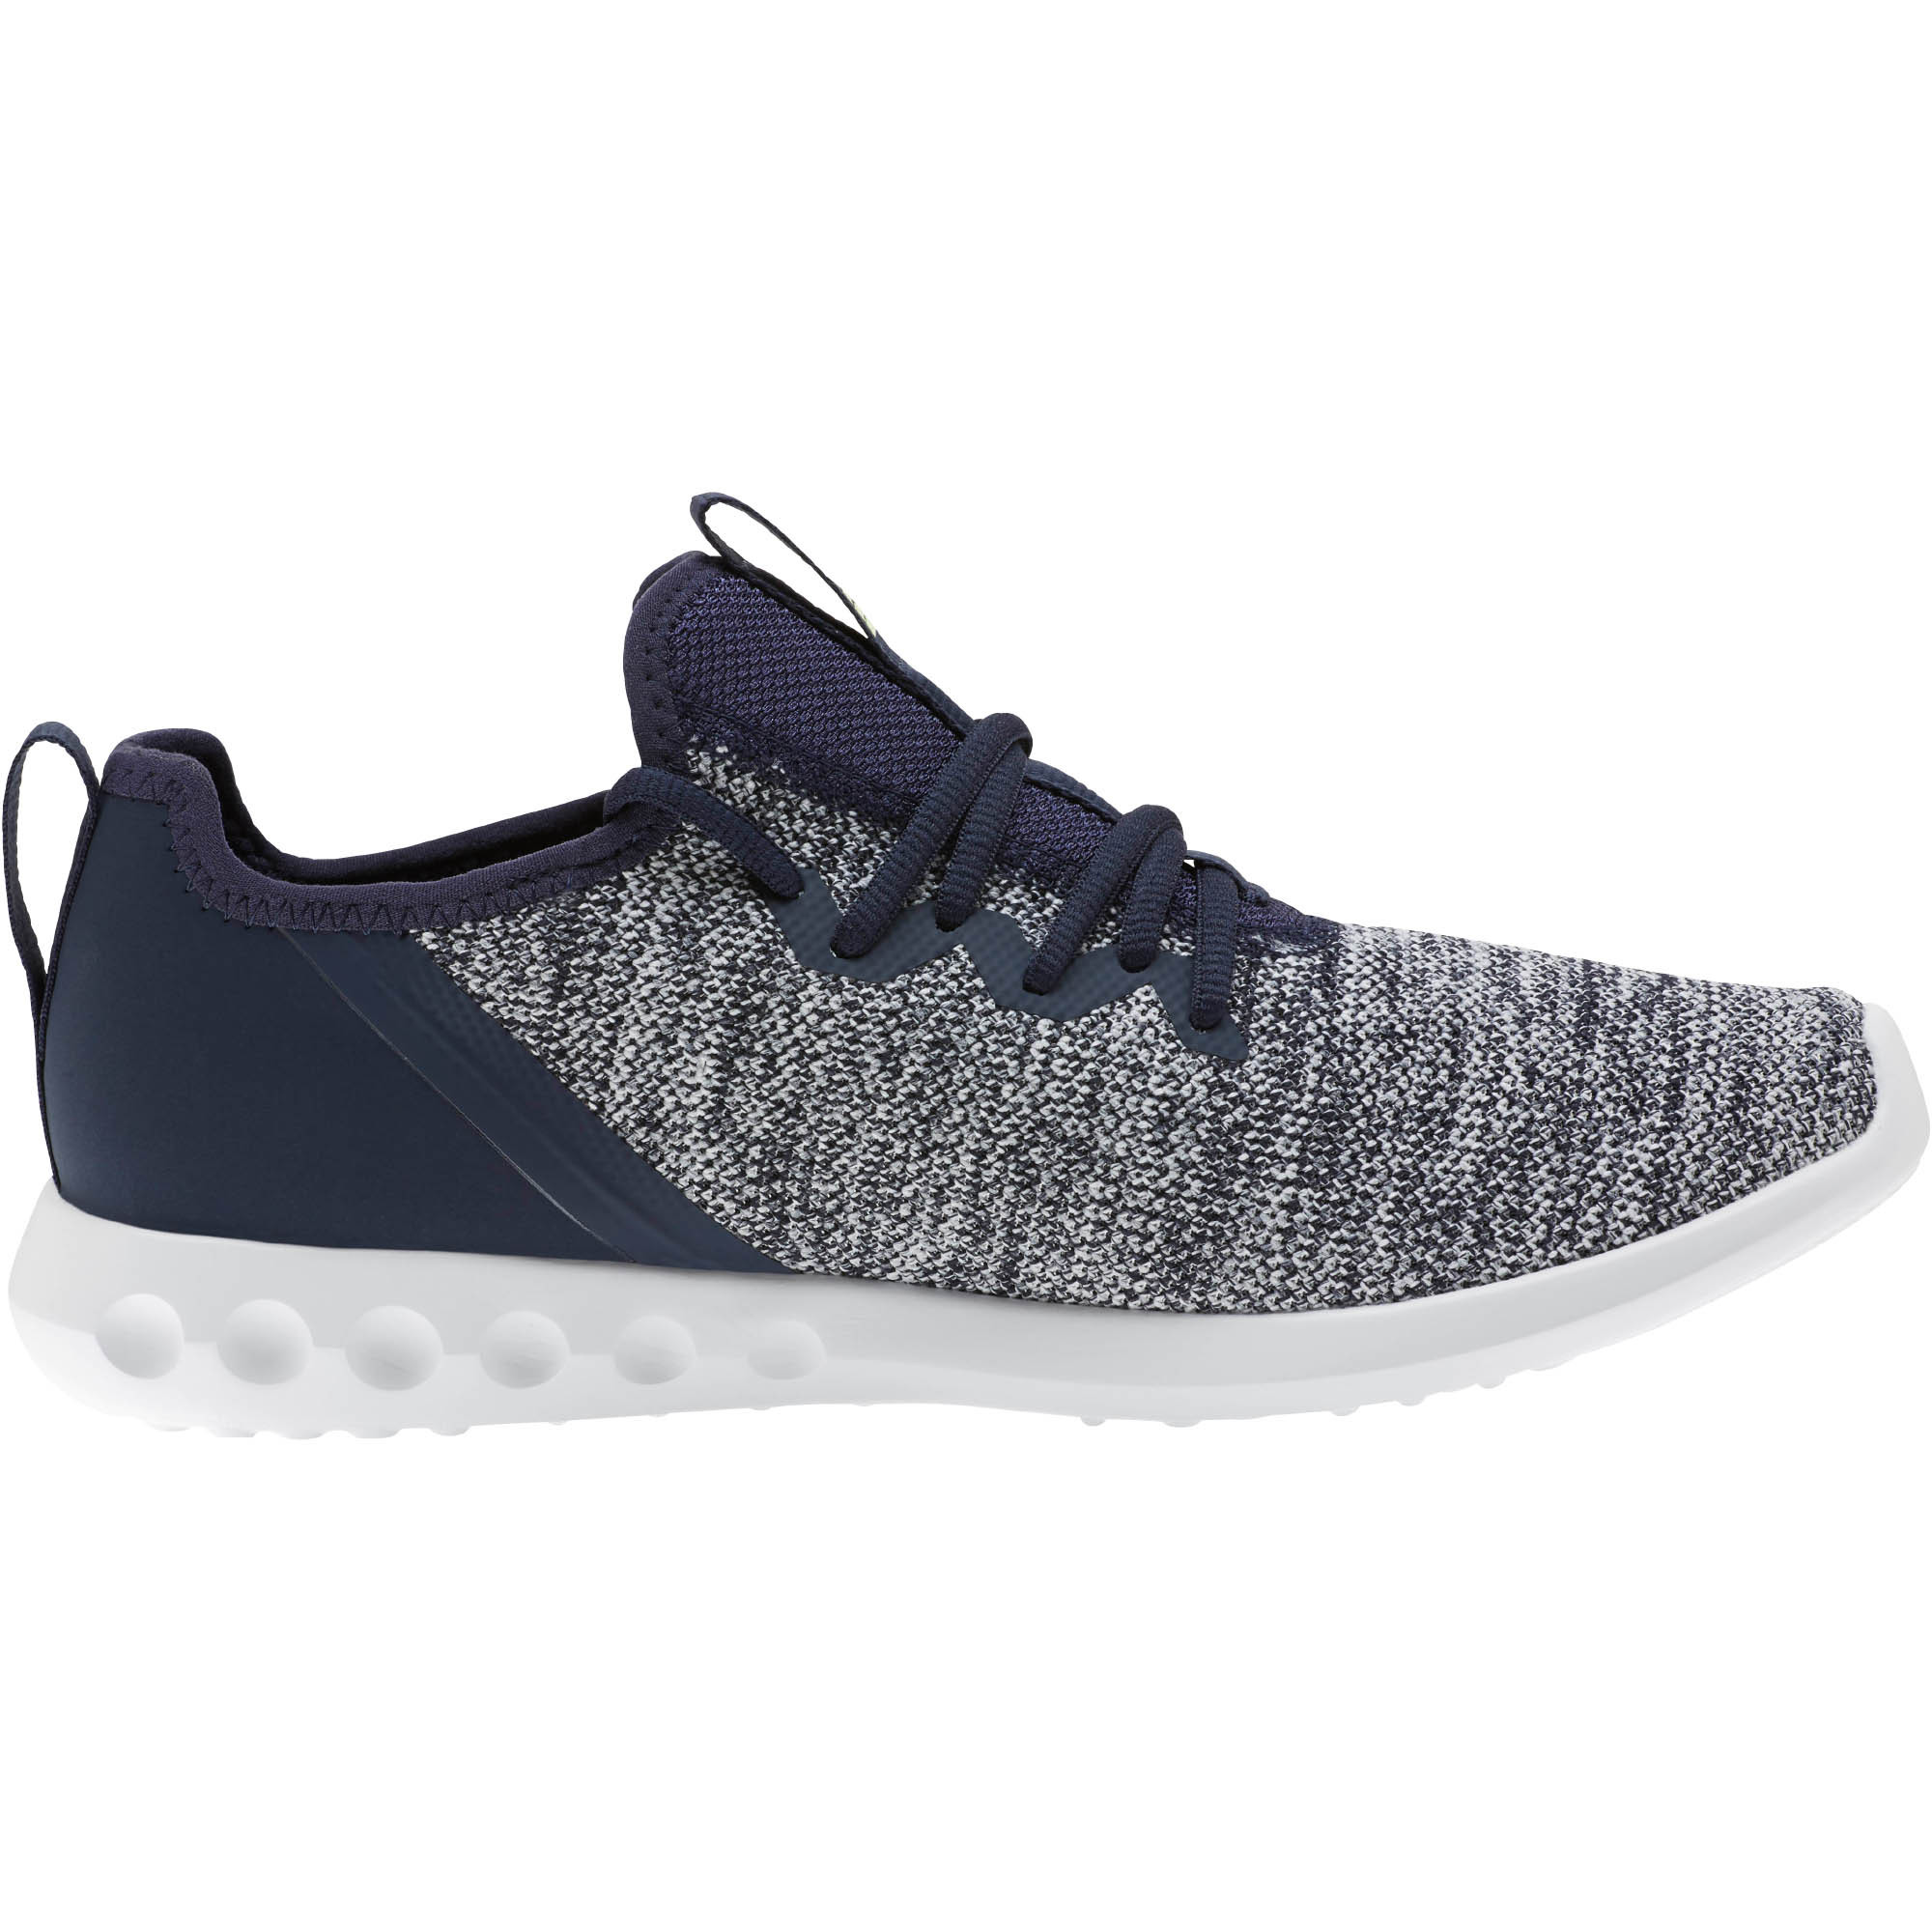 PUMA-Carson-2-X-Knit-Men-039-s-Running-Shoes-Men-Shoe-Running thumbnail 27